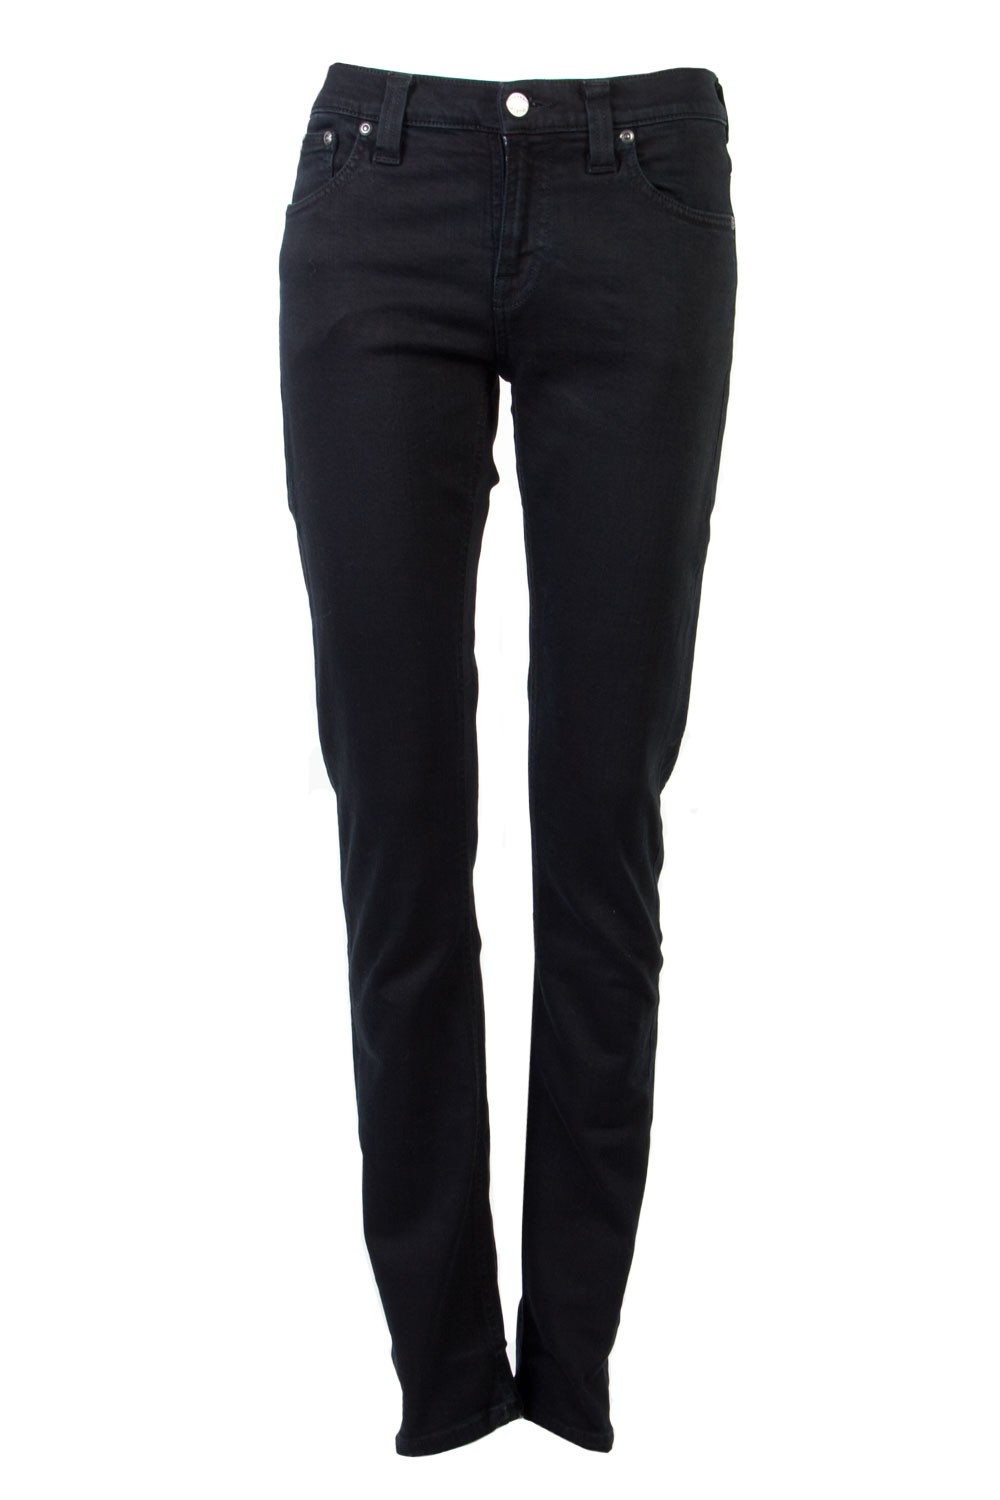 Nudie Jeans Co / Tube Kelly Black Black Jeans  / Outlet,Outlet - 03 March 2013,Jeans  - Superette | Your Fashion Destination.